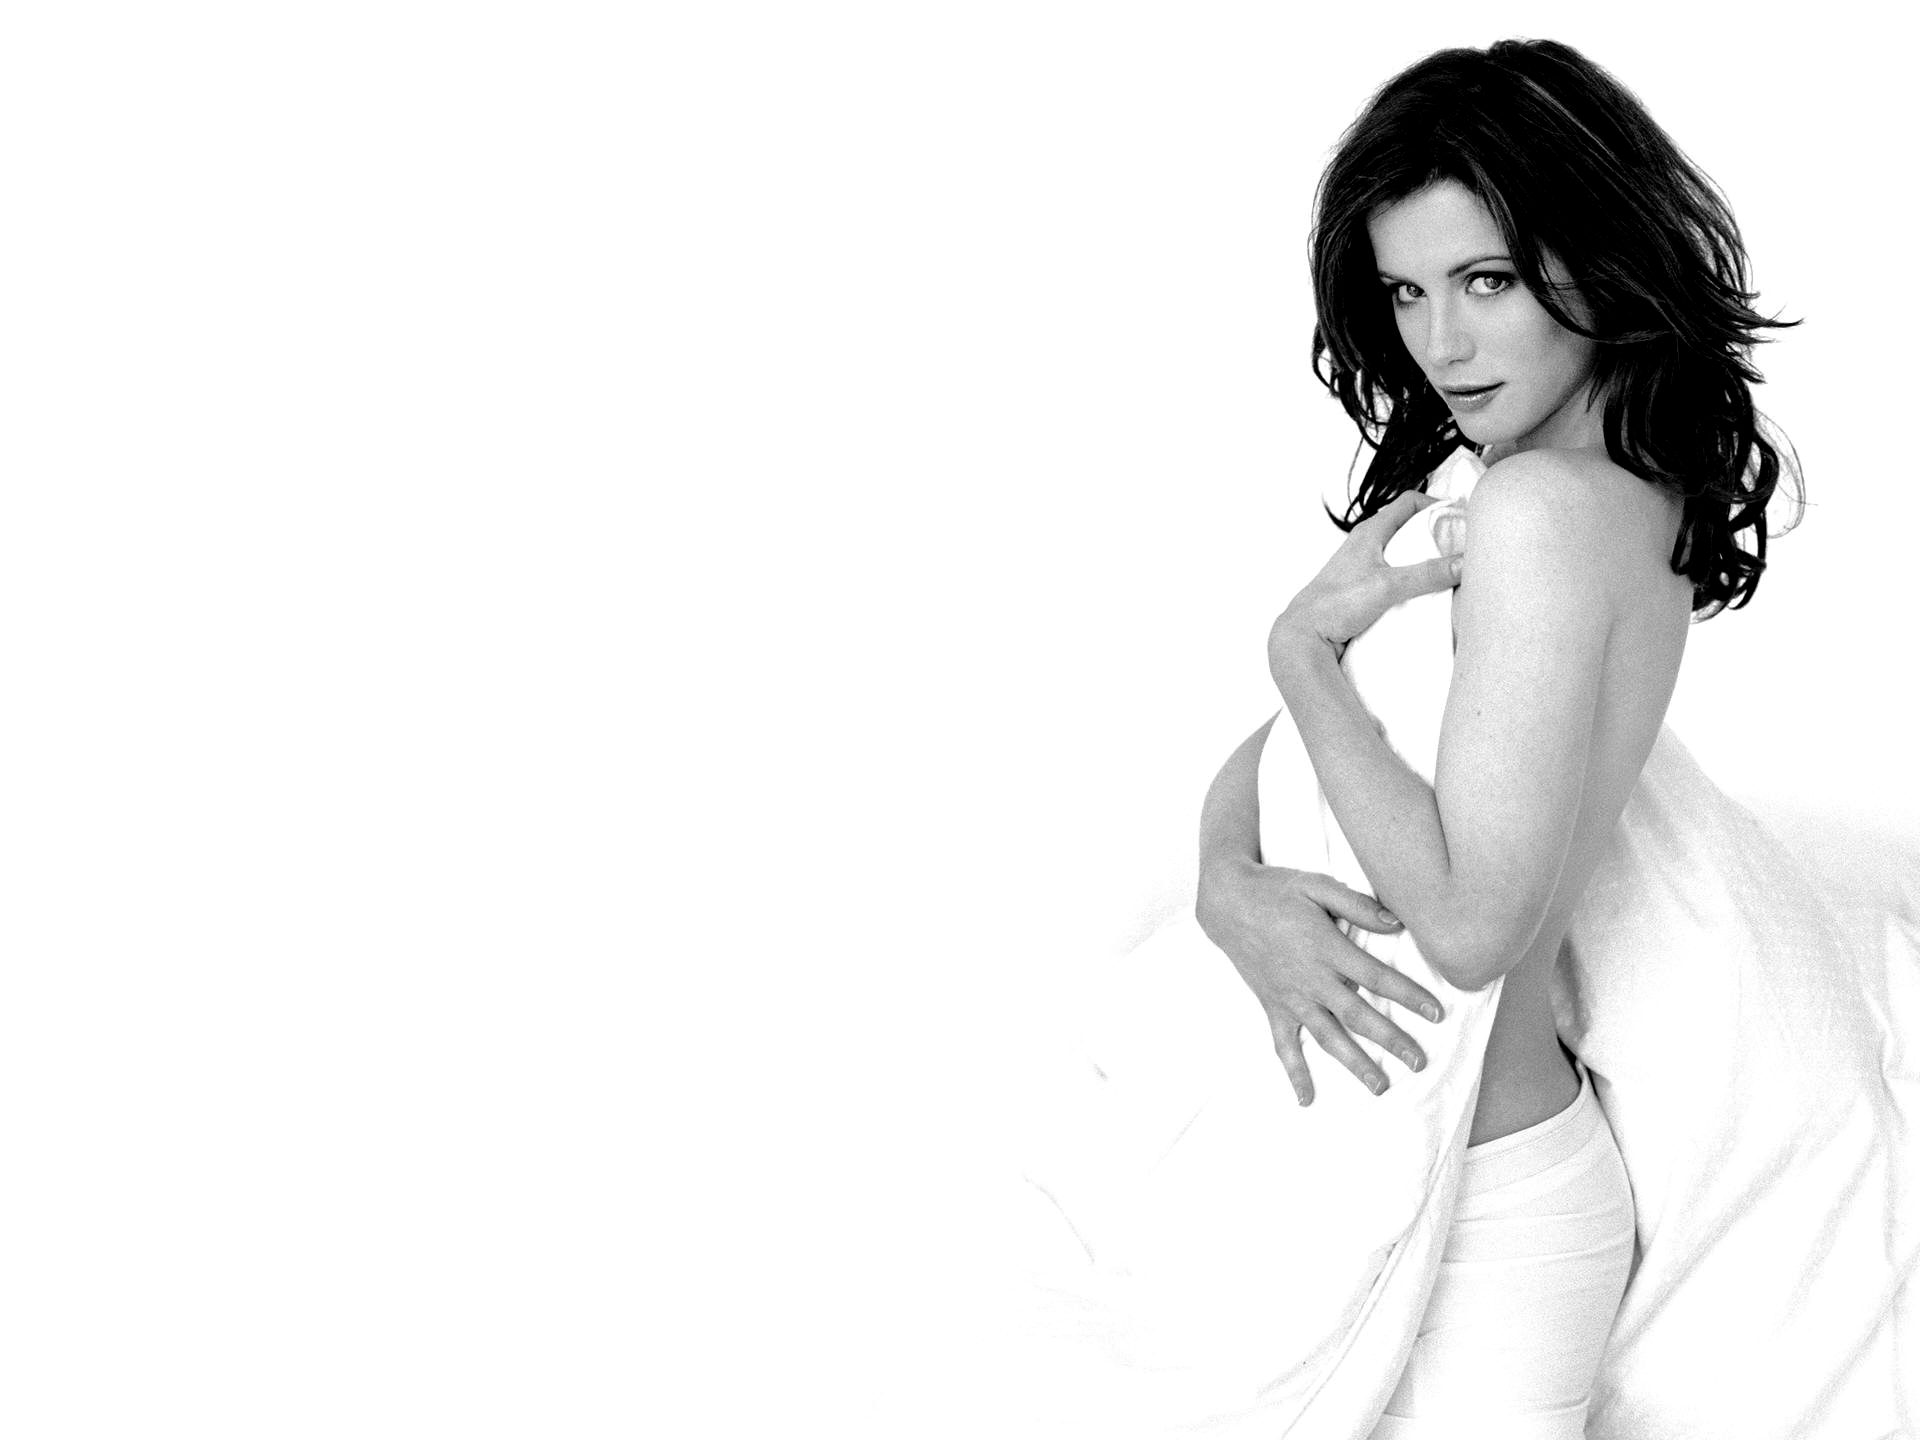 1920x1440 - Kate Beckinsale Wallpapers 18